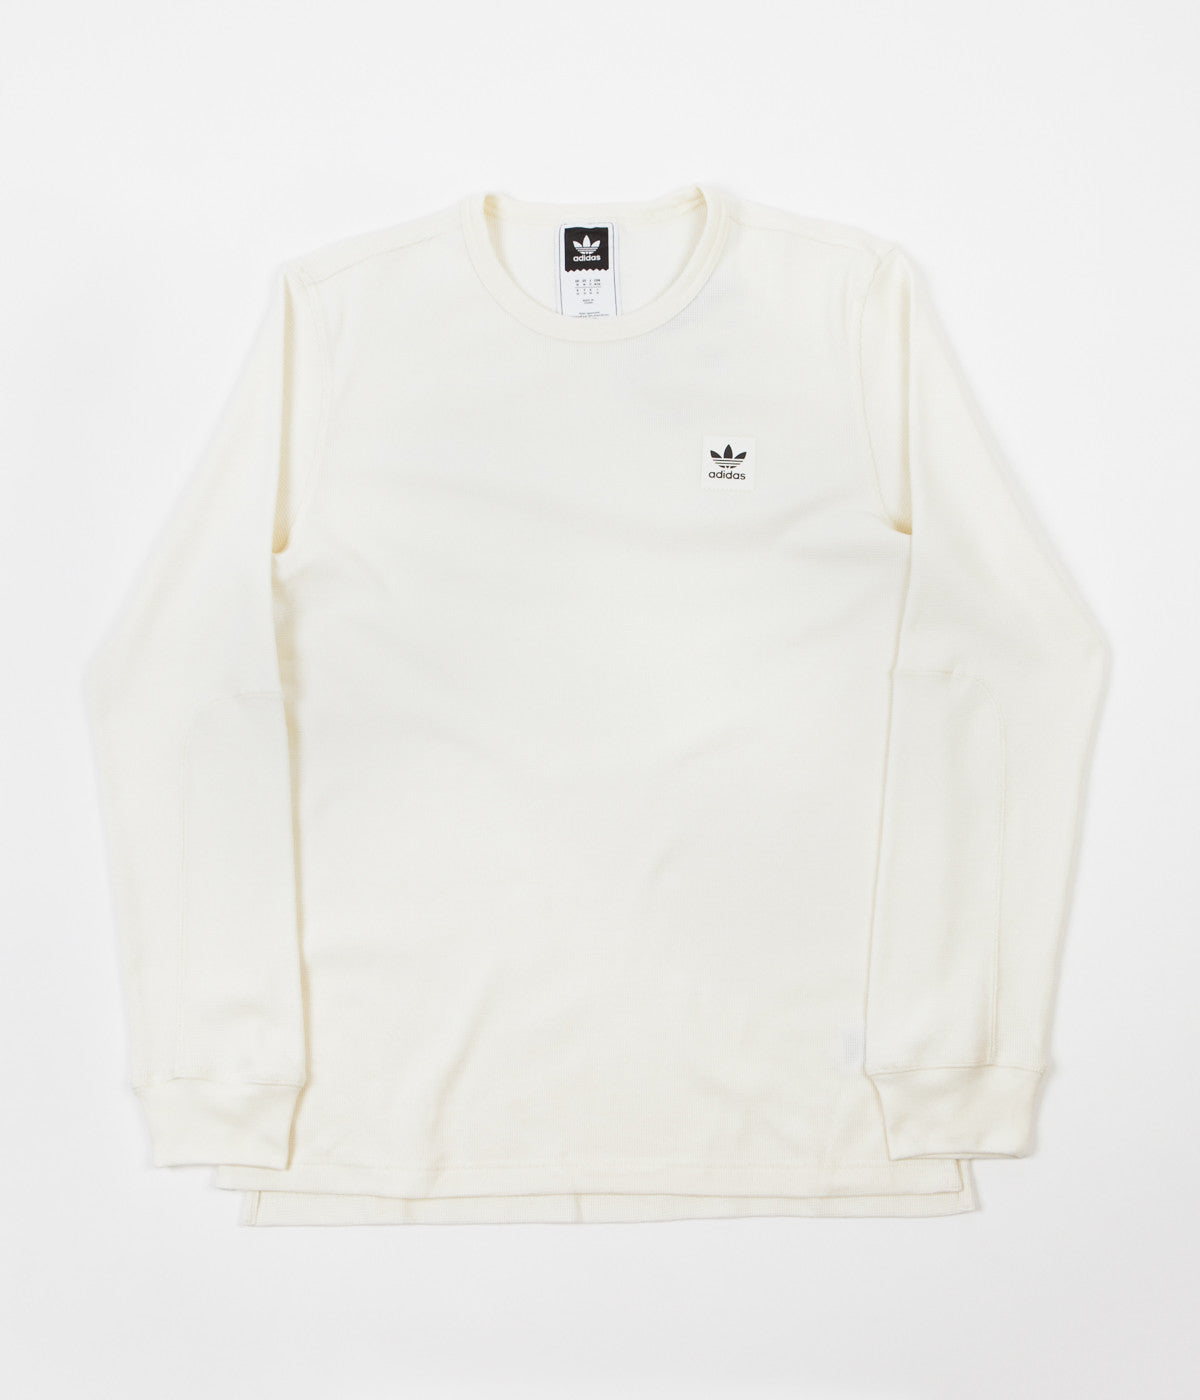 Adidas Thermal Long Sleeve T Shirt Off White Flatspot